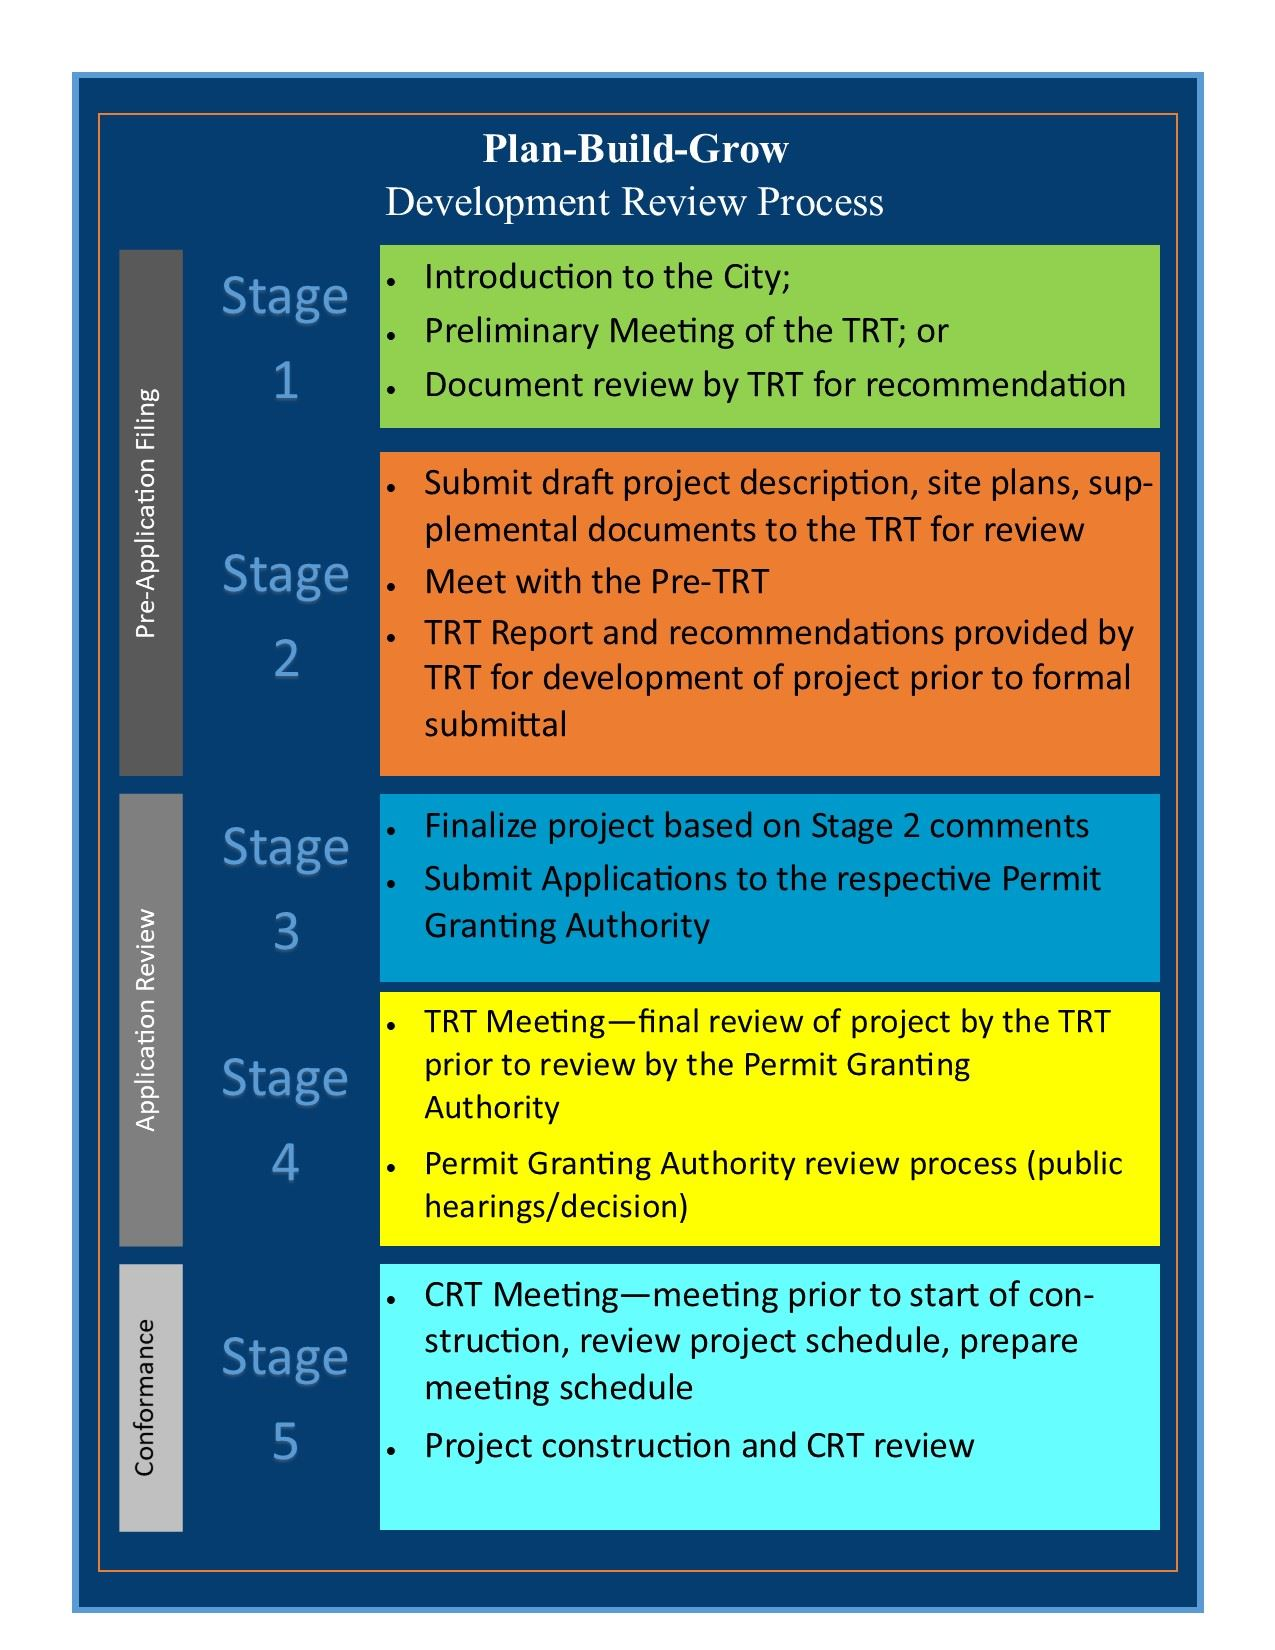 Flow chart that provides an overview of the five stages of plan build grow